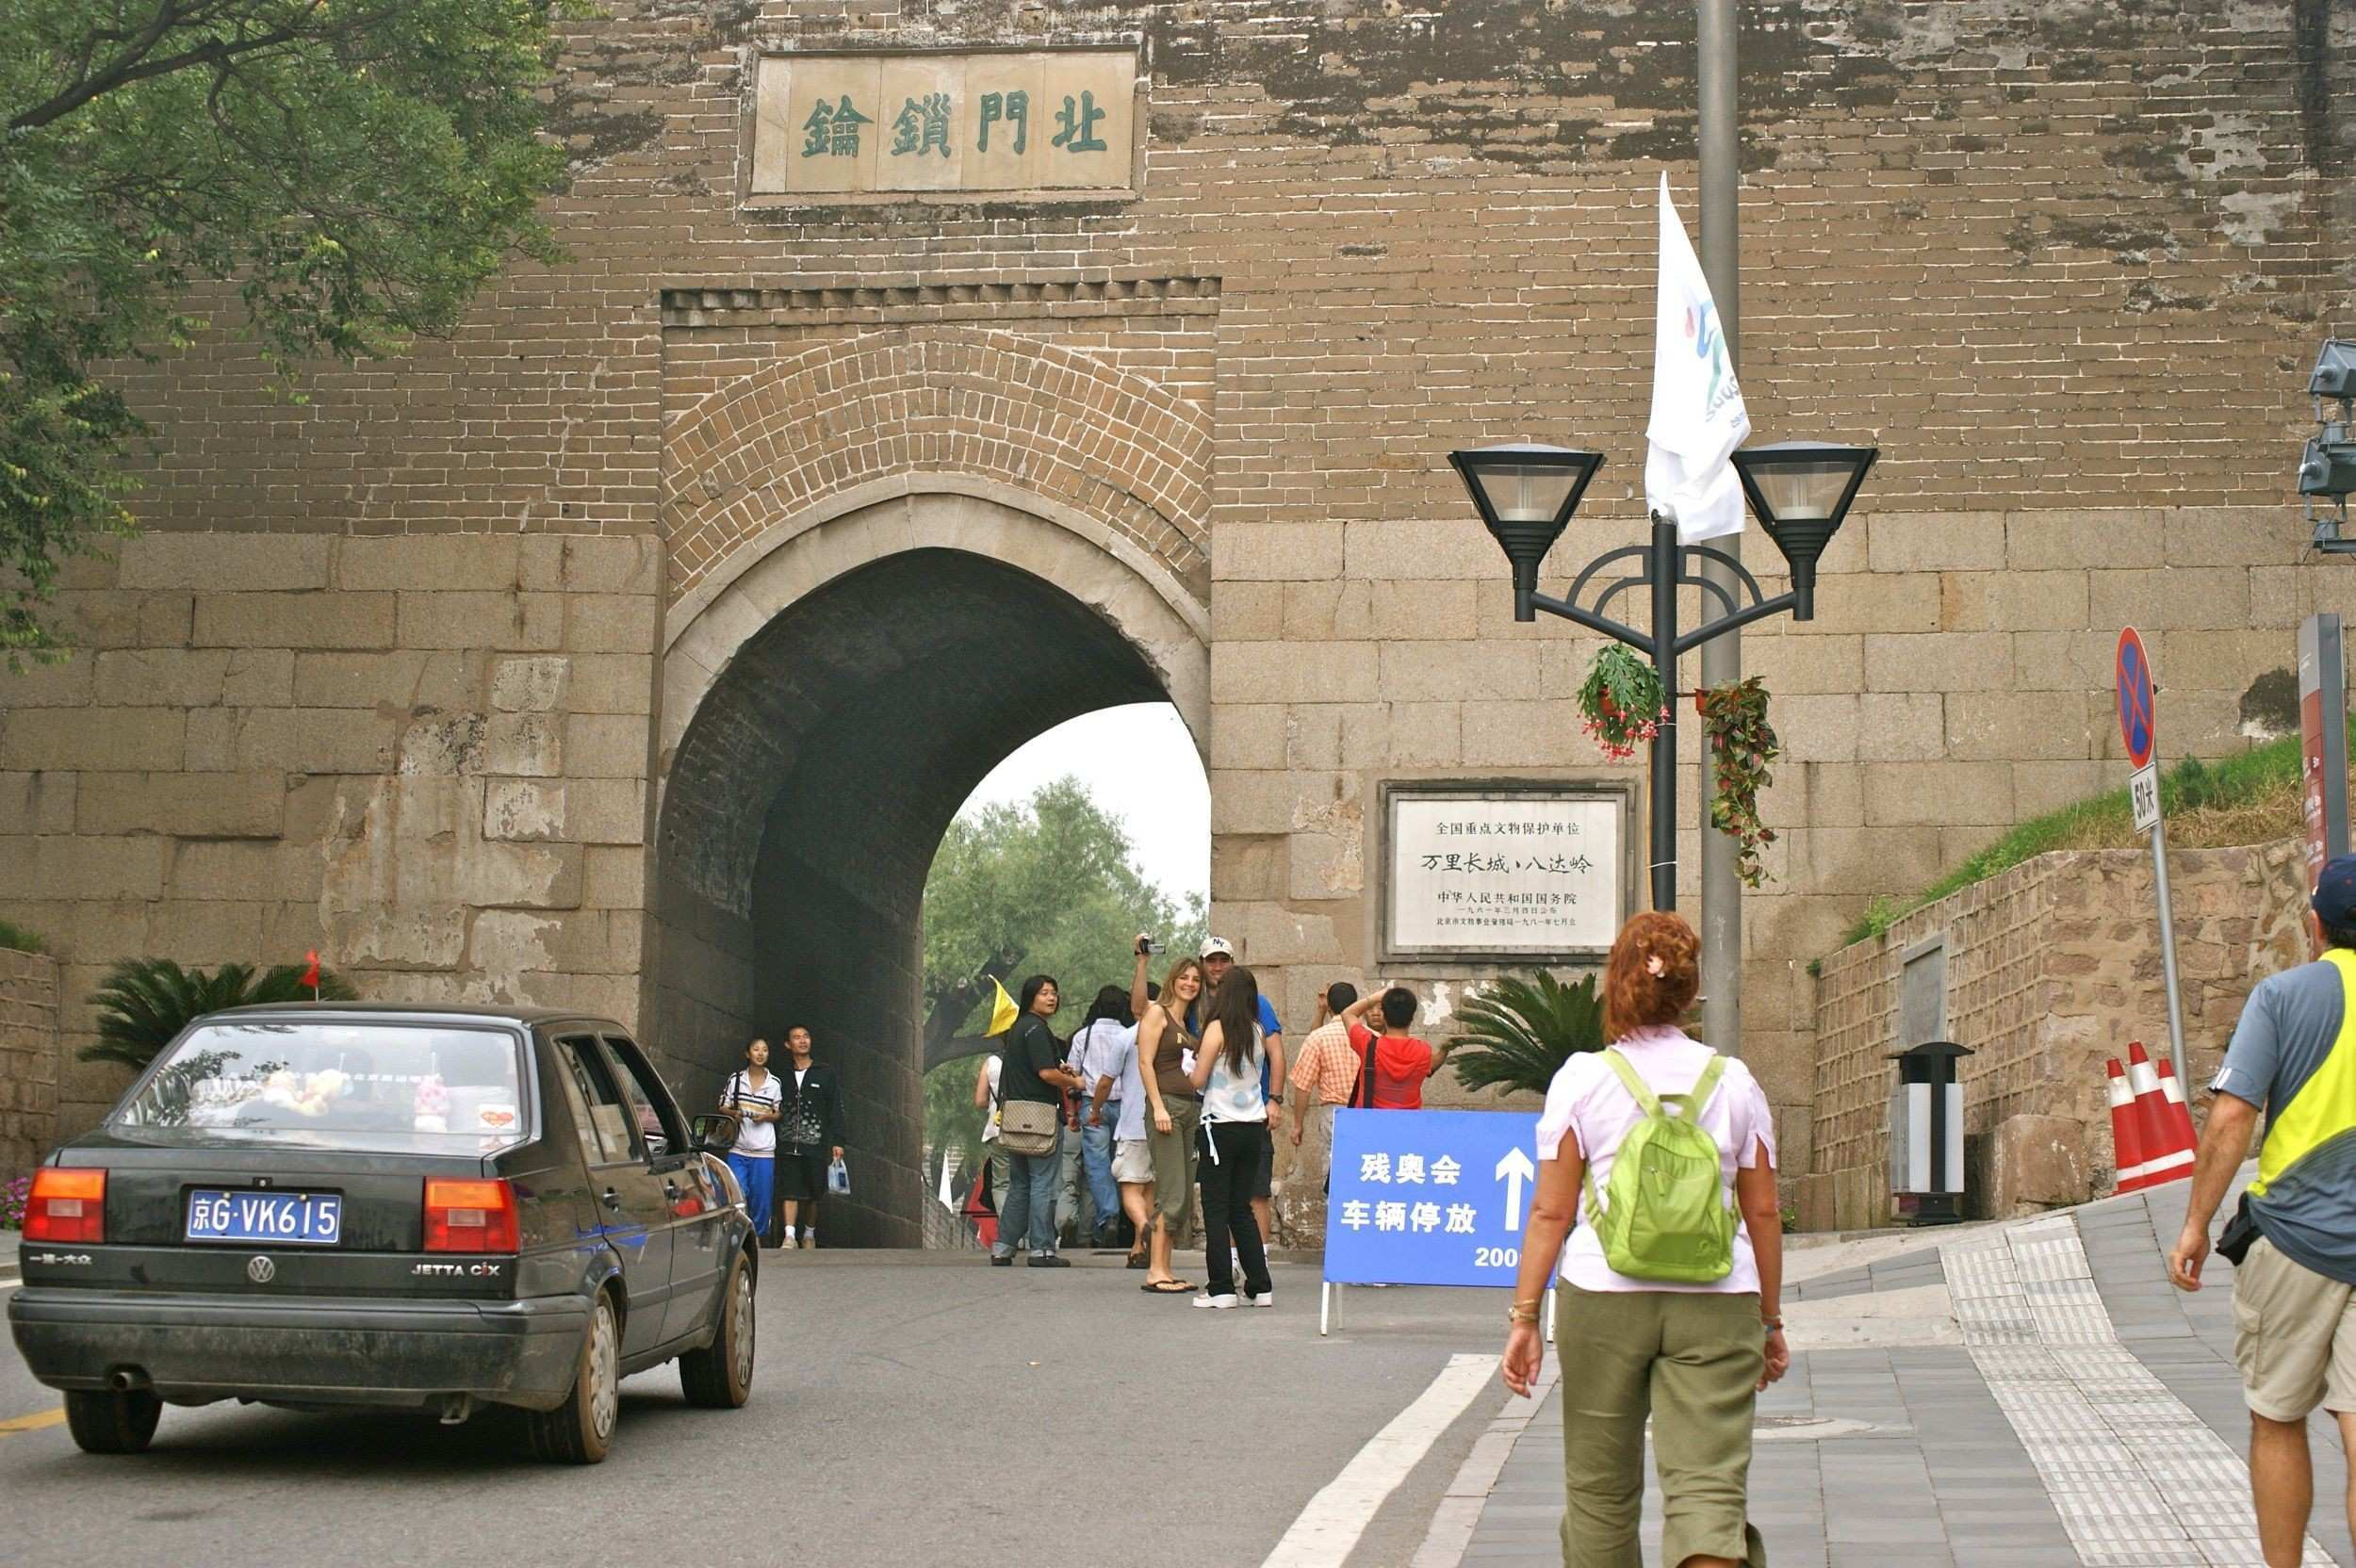 The Great Wall of China is a series of fortifications made of stone